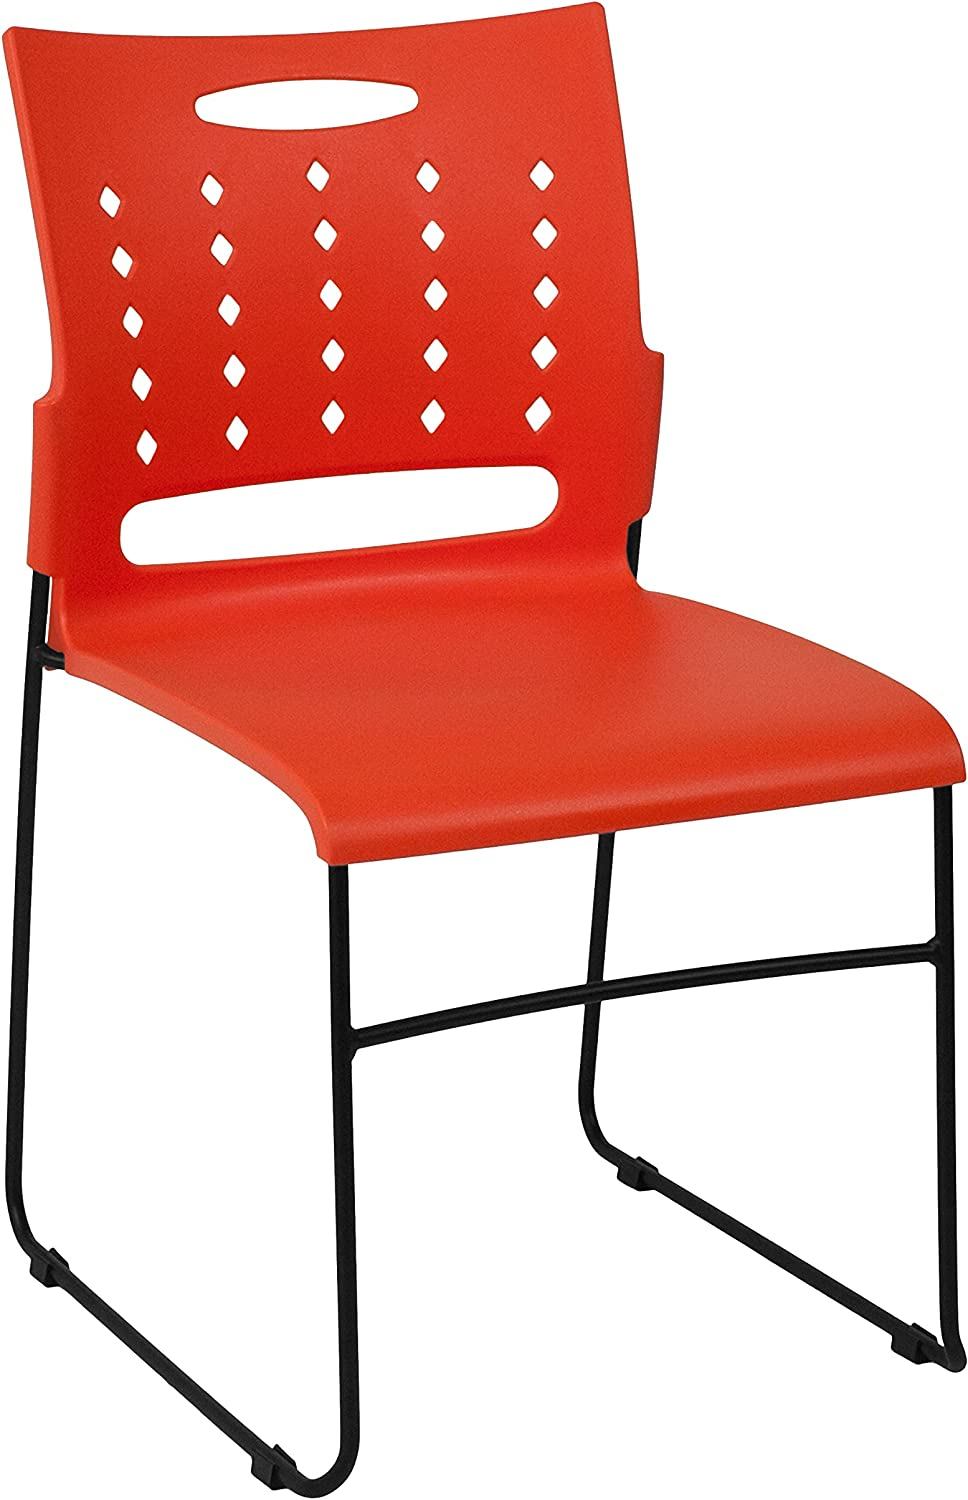 Flash Furniture HERCULES Series 881 lb. Capacity Orange Sled Base Stack Chair with Air-Vent Back